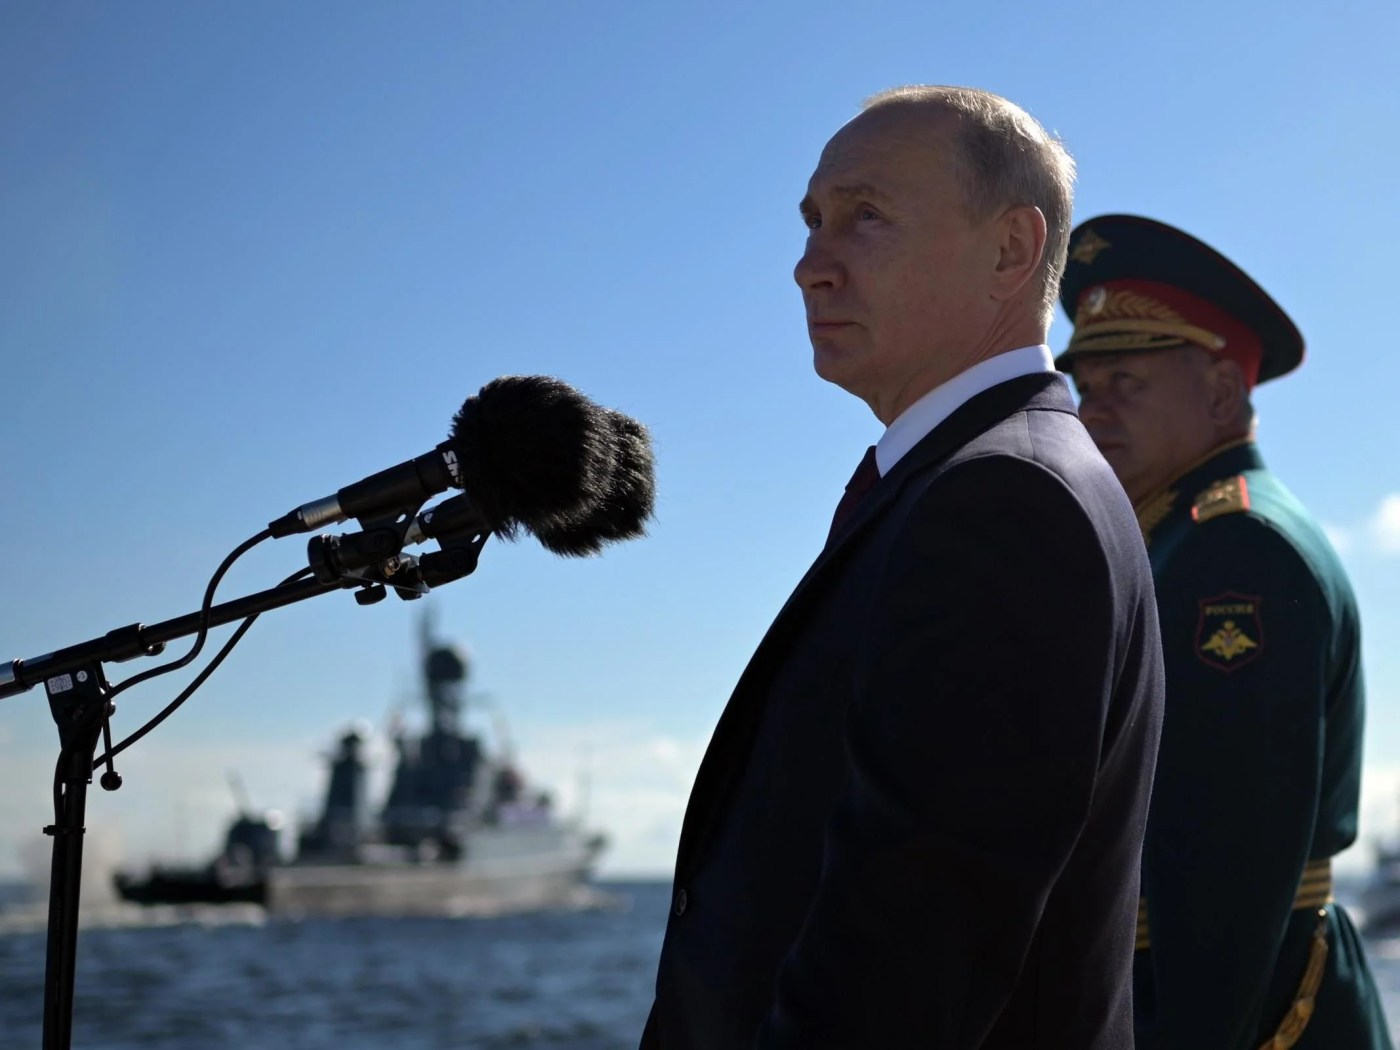 Russian president Vladimir Putin and defence minister Sergei Shoigu attend the 'Russia Navy Day' parade in St. Petersburg